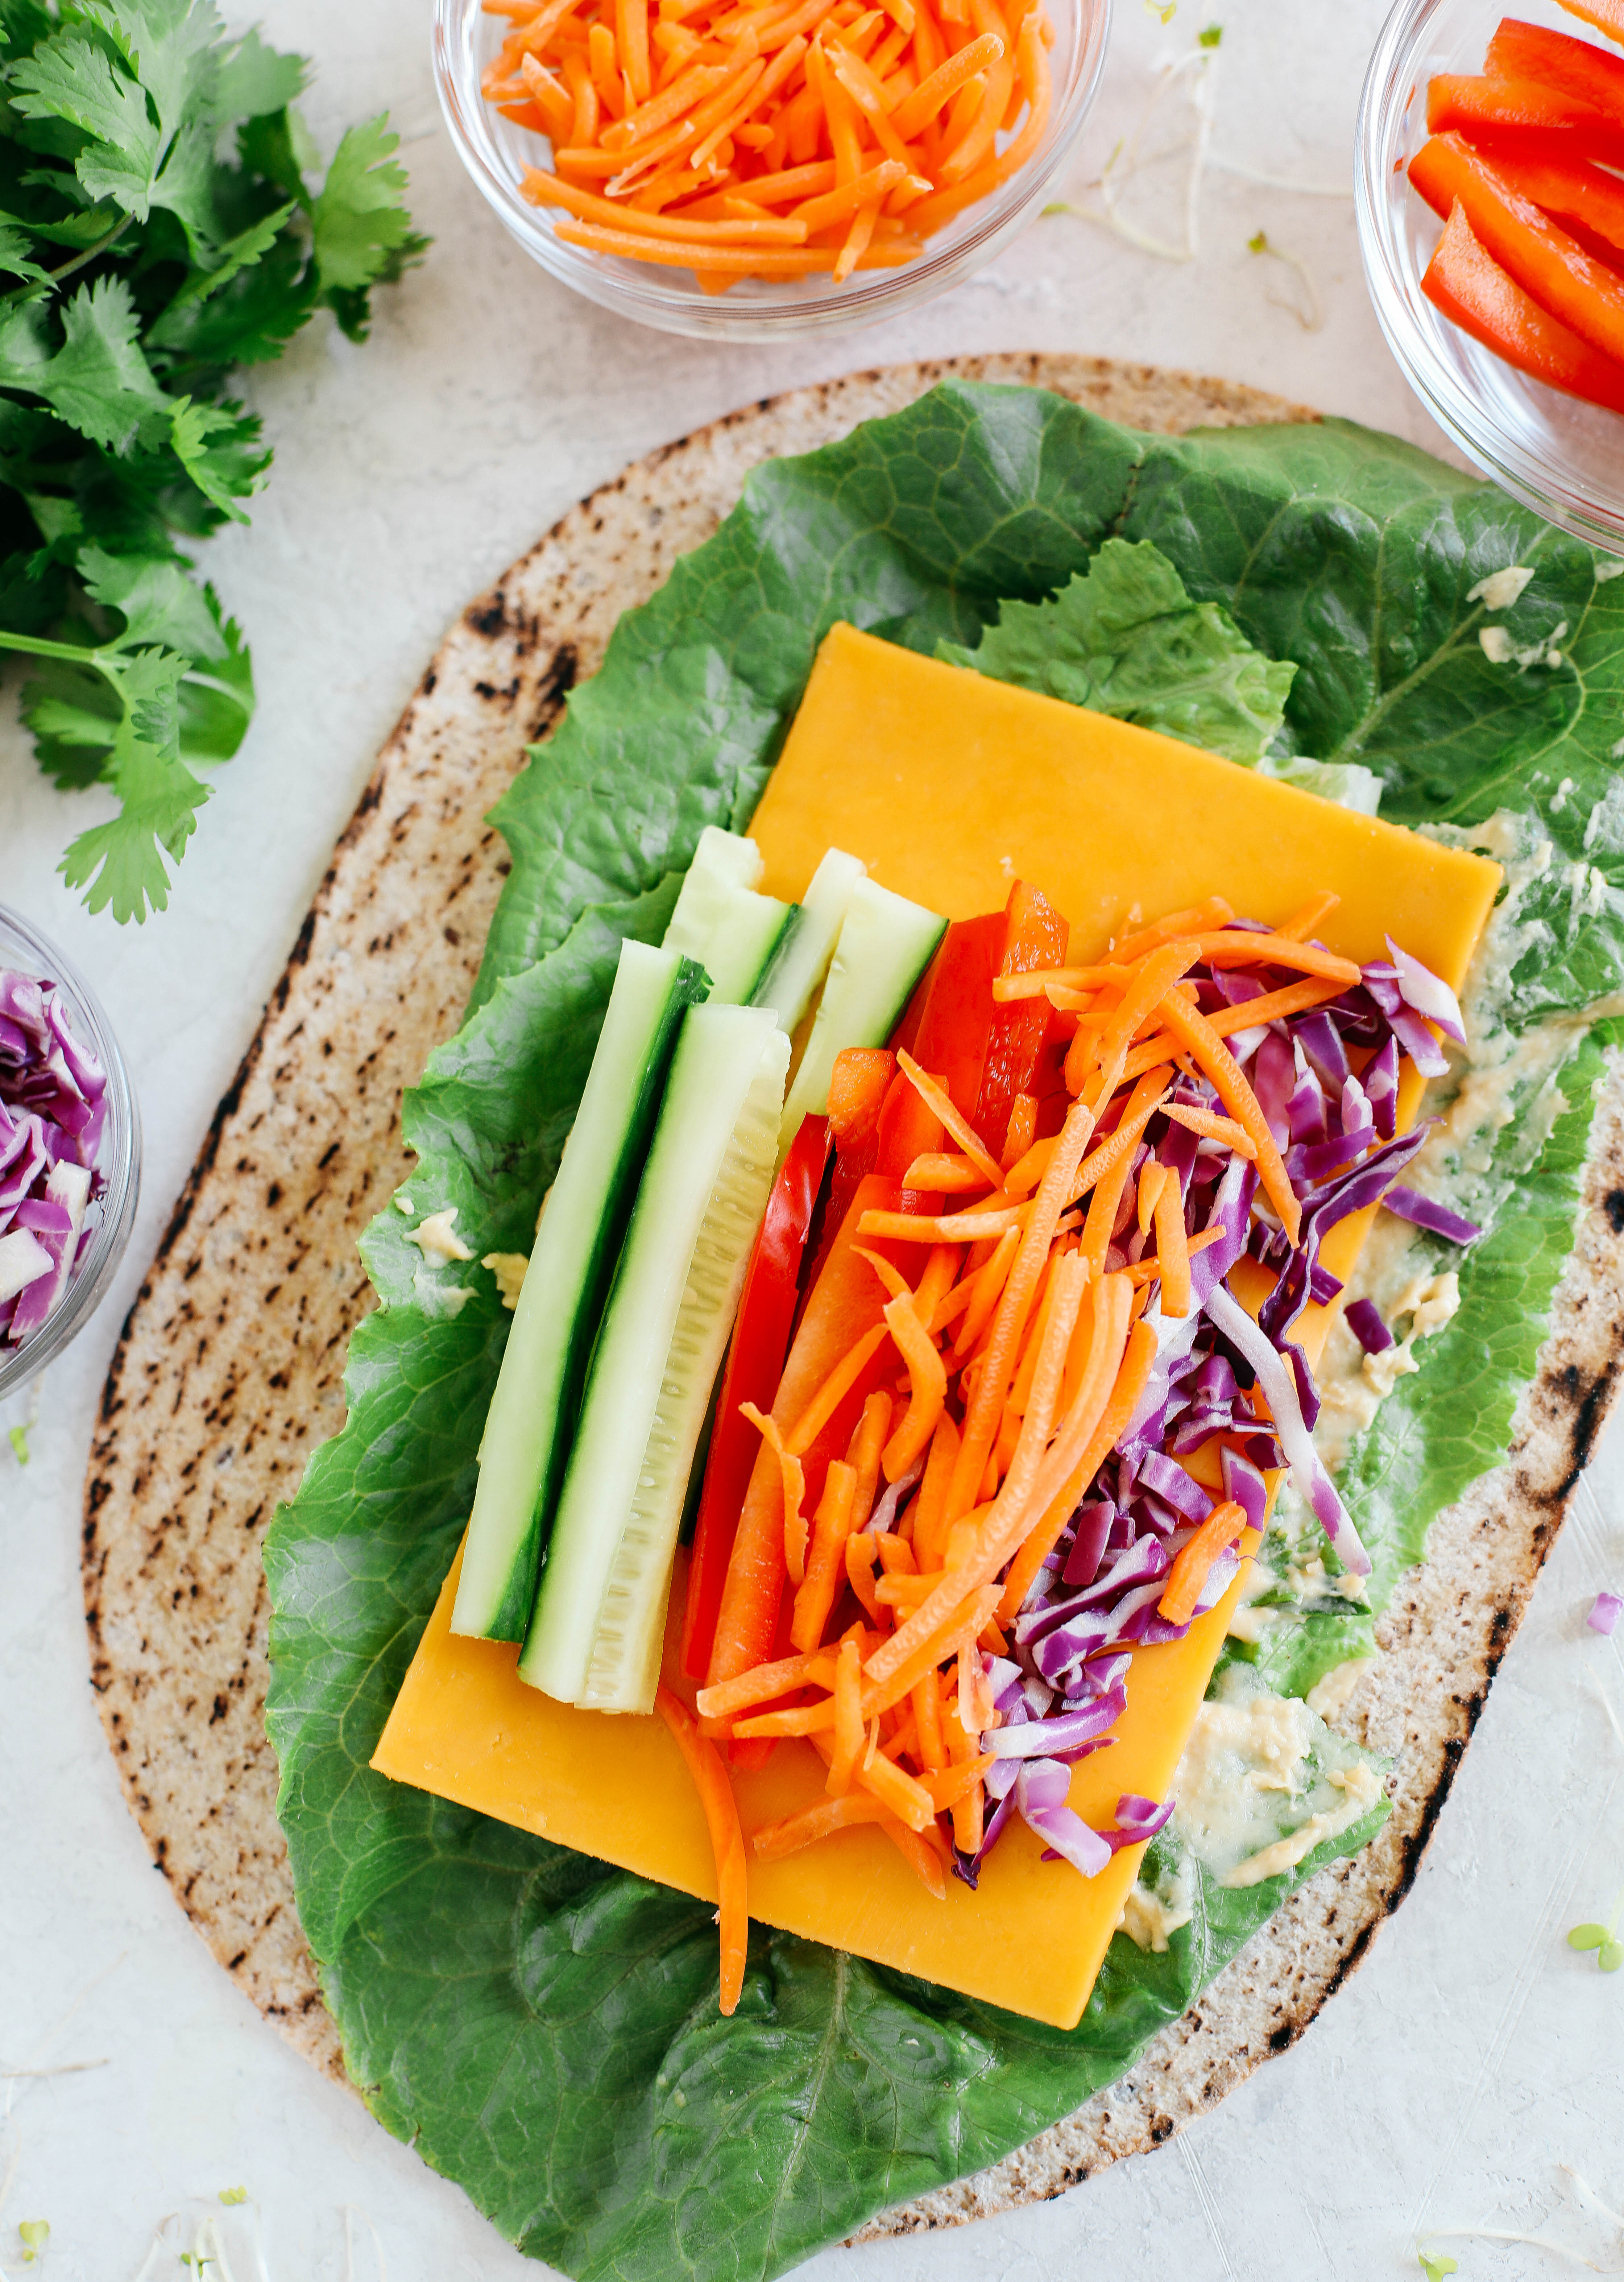 These colorful Rainbow Veggie Rolls are healthy, crunchy and loaded with tons of fresh veggies along with a delicious Ginger Avocado Dressing for dipping or drizzling!